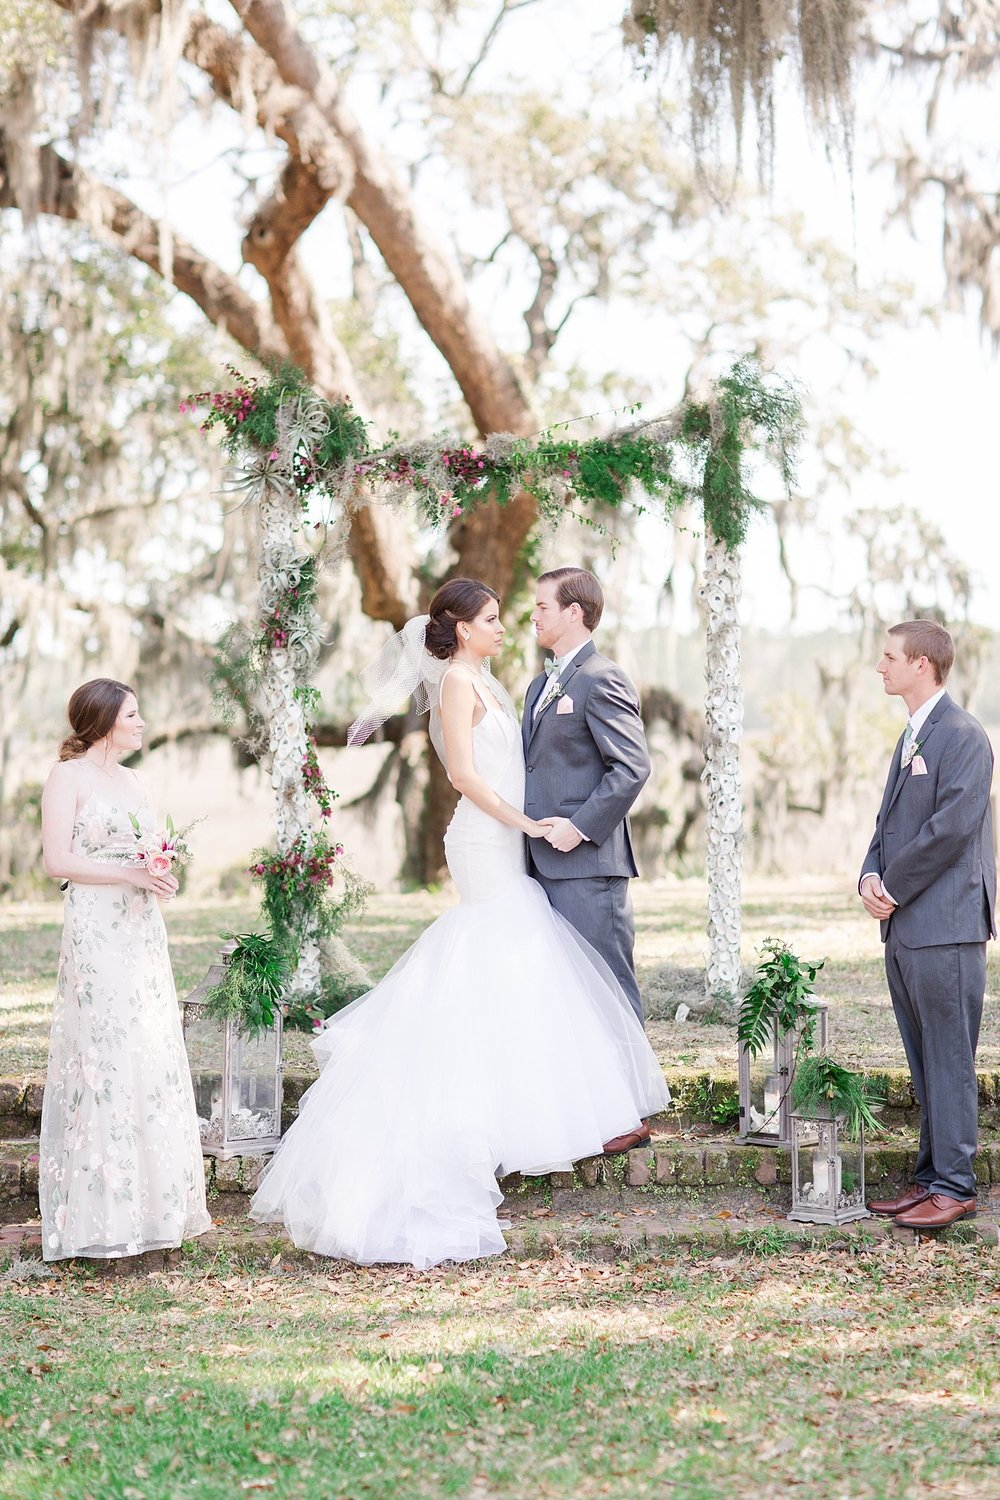 rachel-strickland-photography-katie-may-ivory-and-beau-bridal-boutique-bethesda-academy-wedding-whitfield-chapel-wedding-savannah-bridal-boutique-savannah-weddings-savannah-wedding-savannah-wedding-planner-savannah-bridal-gowns-savannah-bride-11.jpg